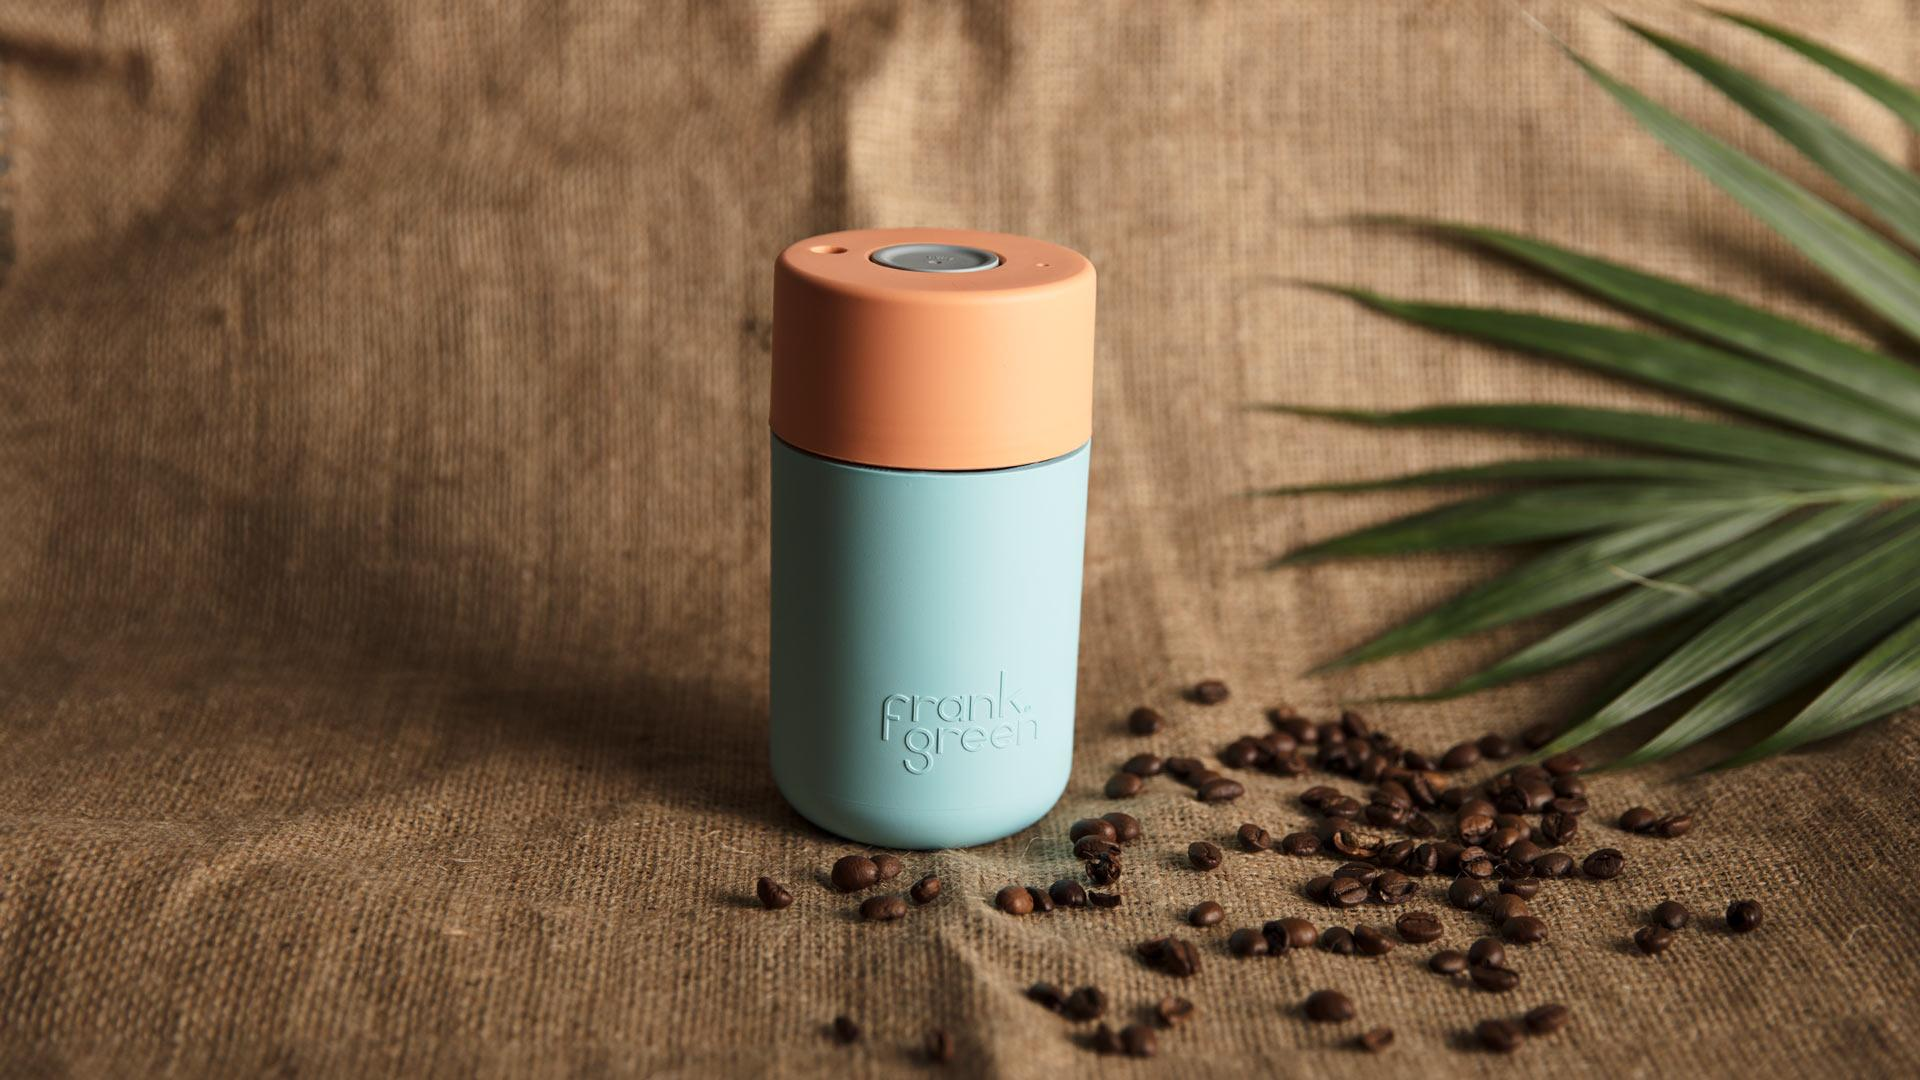 Frank Green's SmartCup in light aqua blue and mid-orange